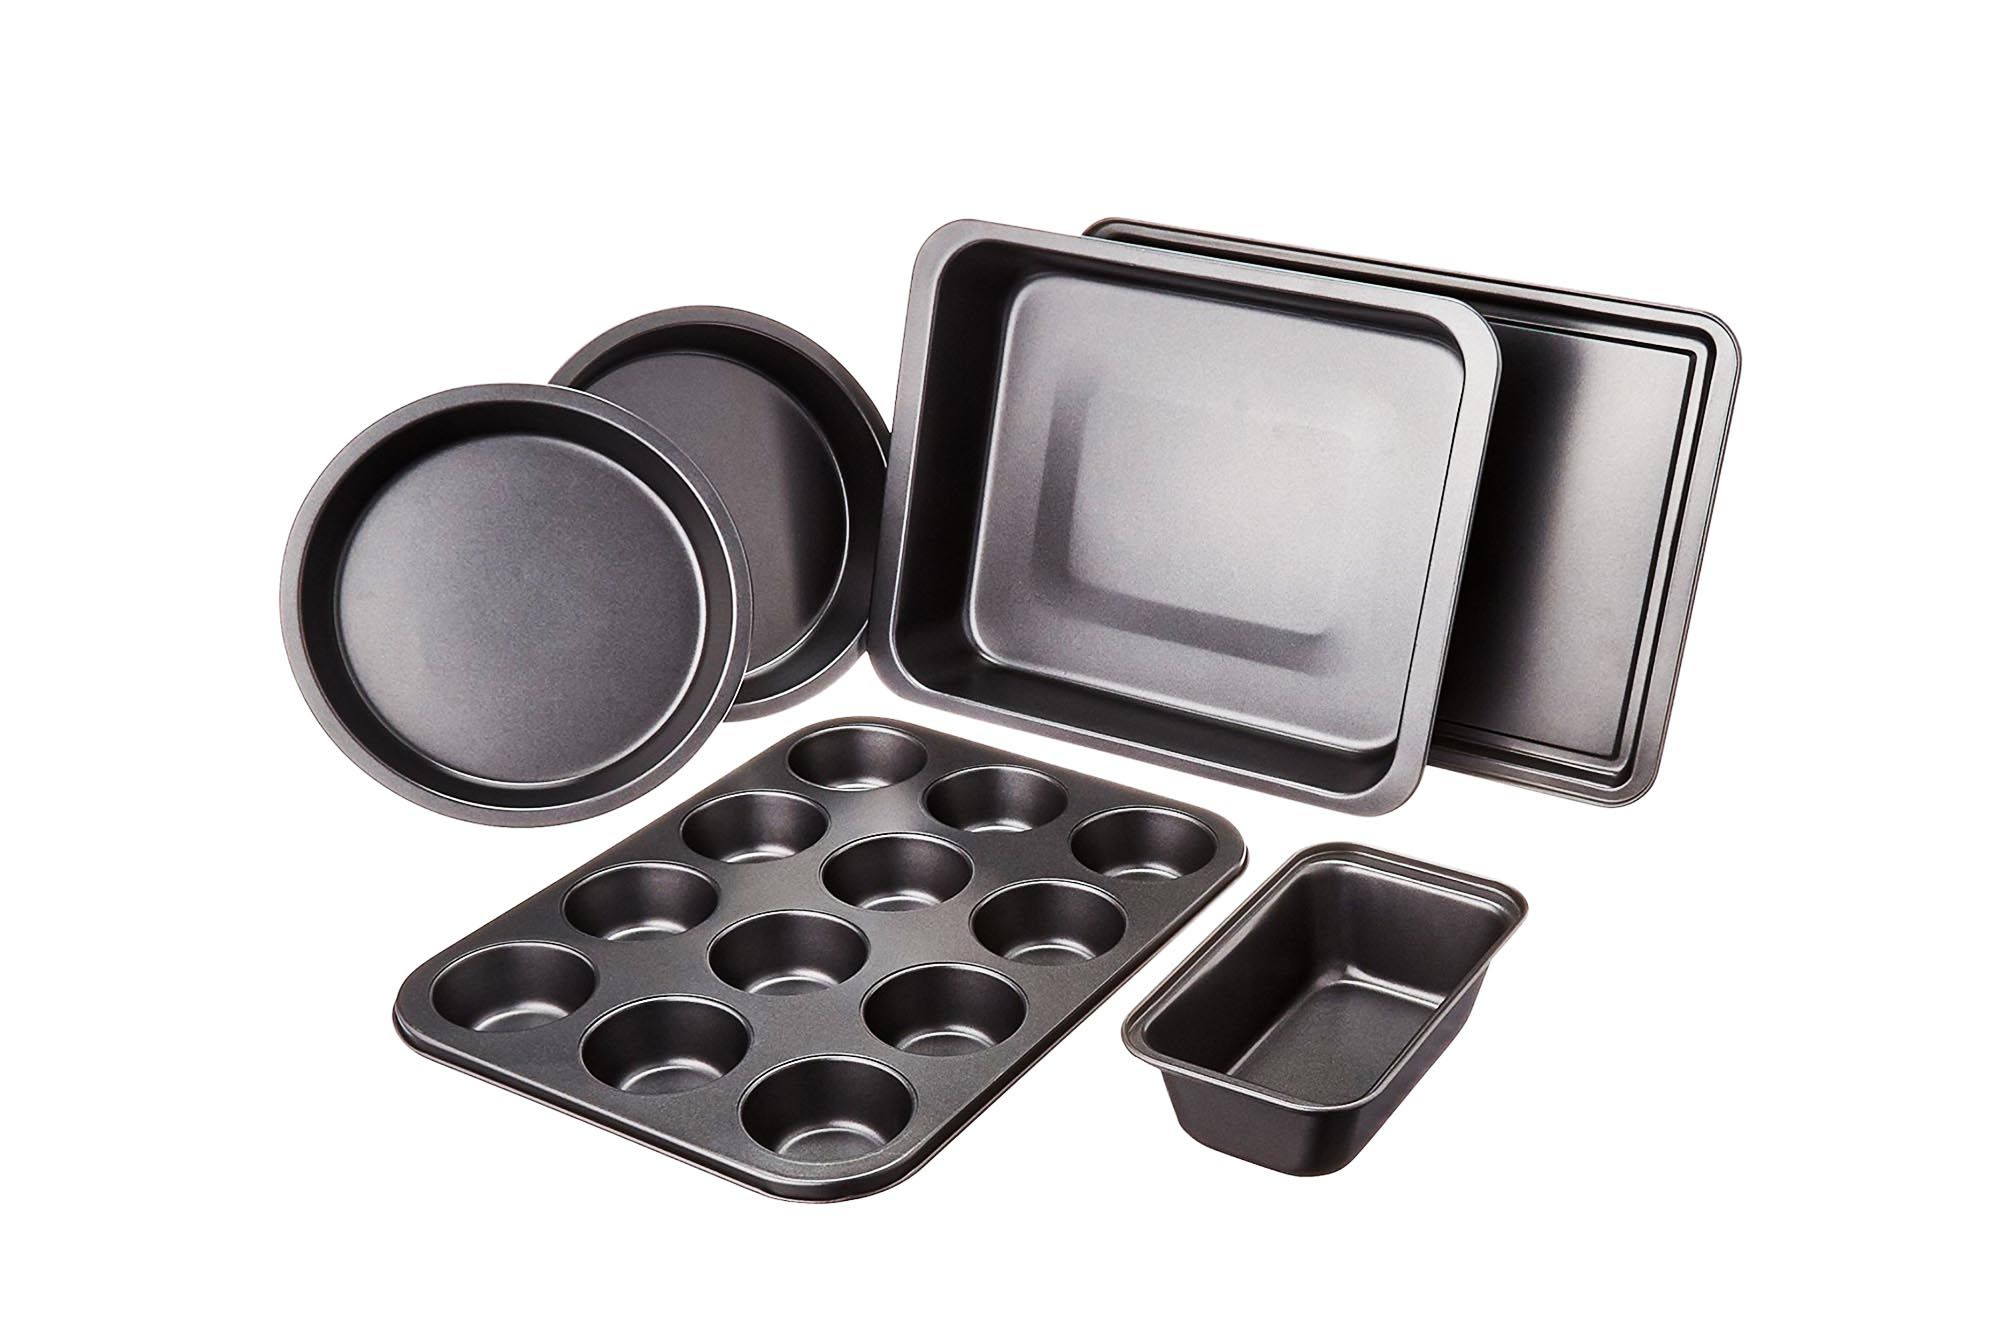 Bakeware Set - 6 Pieces: 15% Off - http://chefcousin.com/2017/04/02/bakeware-set-6-pieces-15-off/ #Amazon, #Chef, #Cooking, #Coupons, #Deals, #Discounts, #Kitchen, #Recipes, #Sales